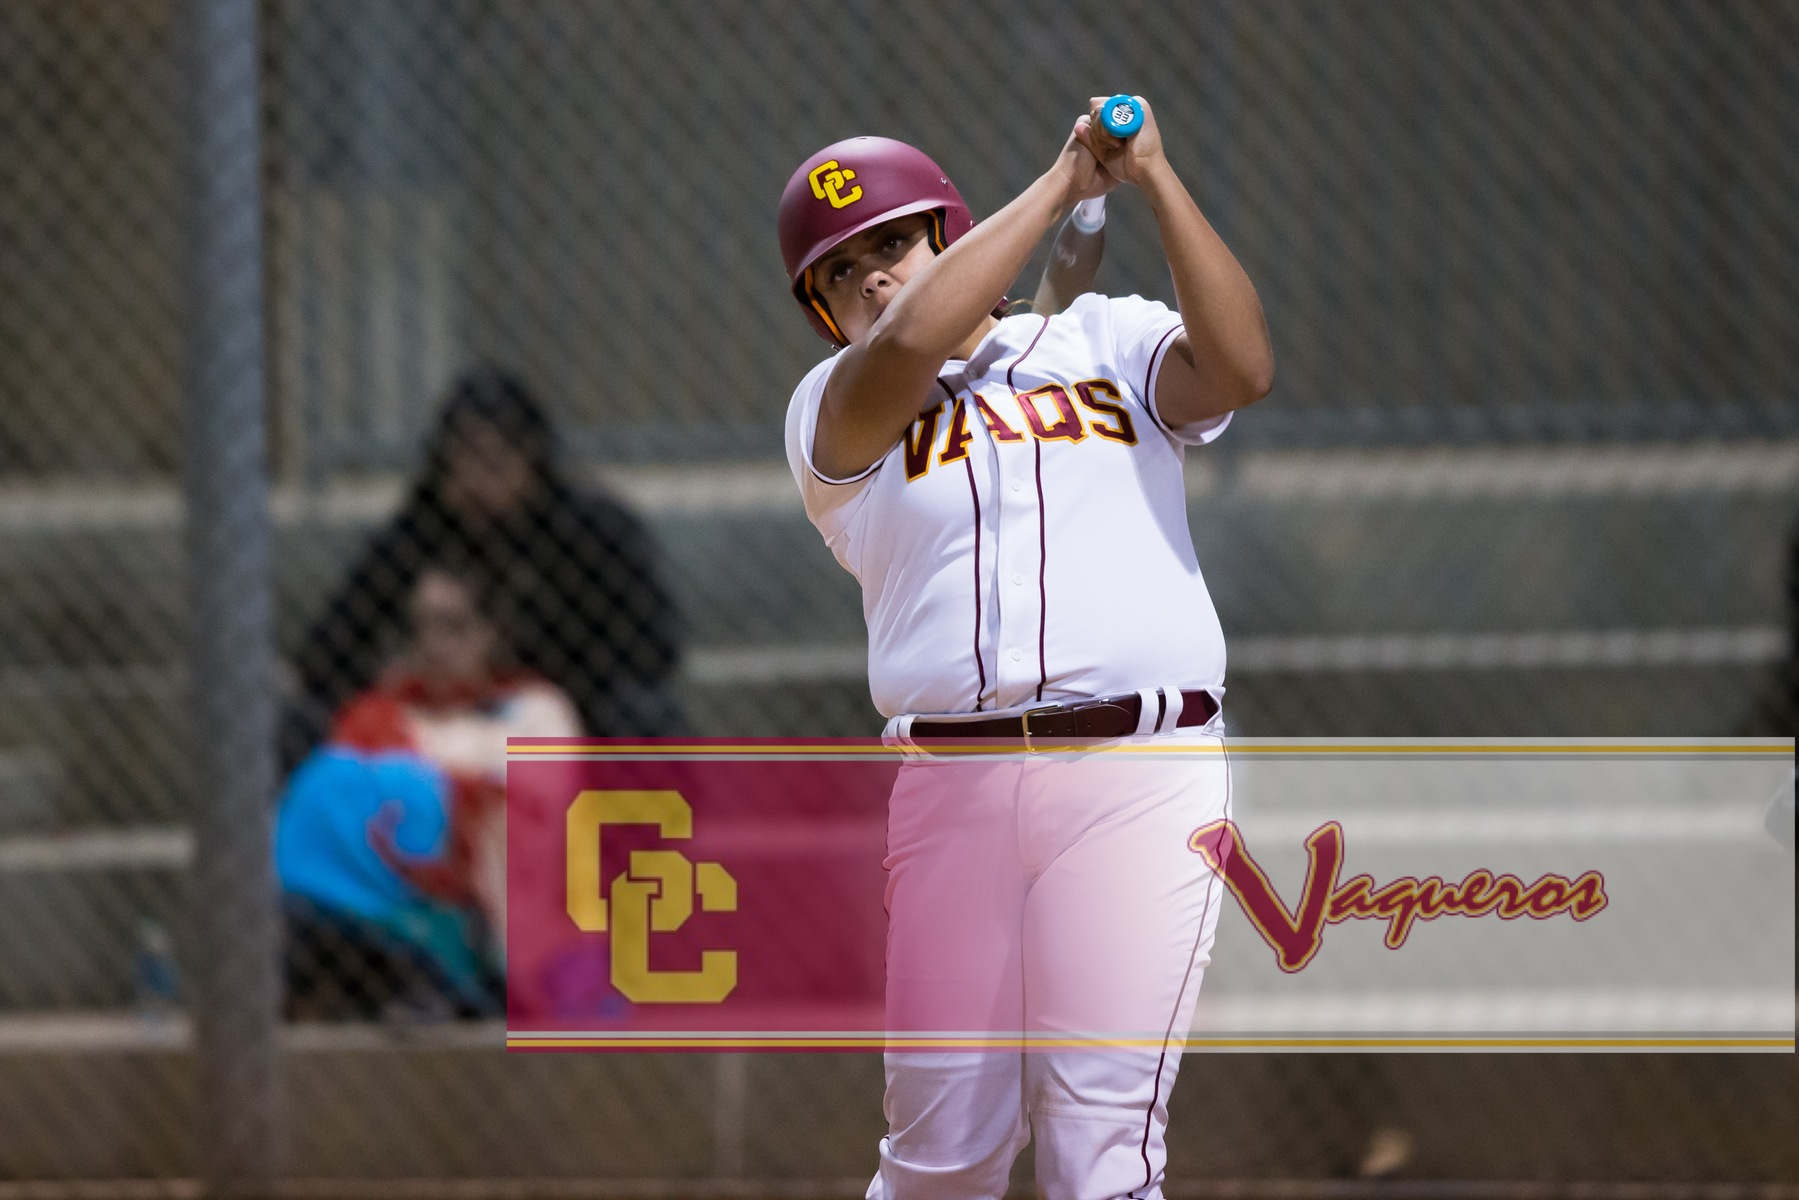 Madison Stillwell Homer's again but Lady Vaqs fall 14-1 to Cerritos.